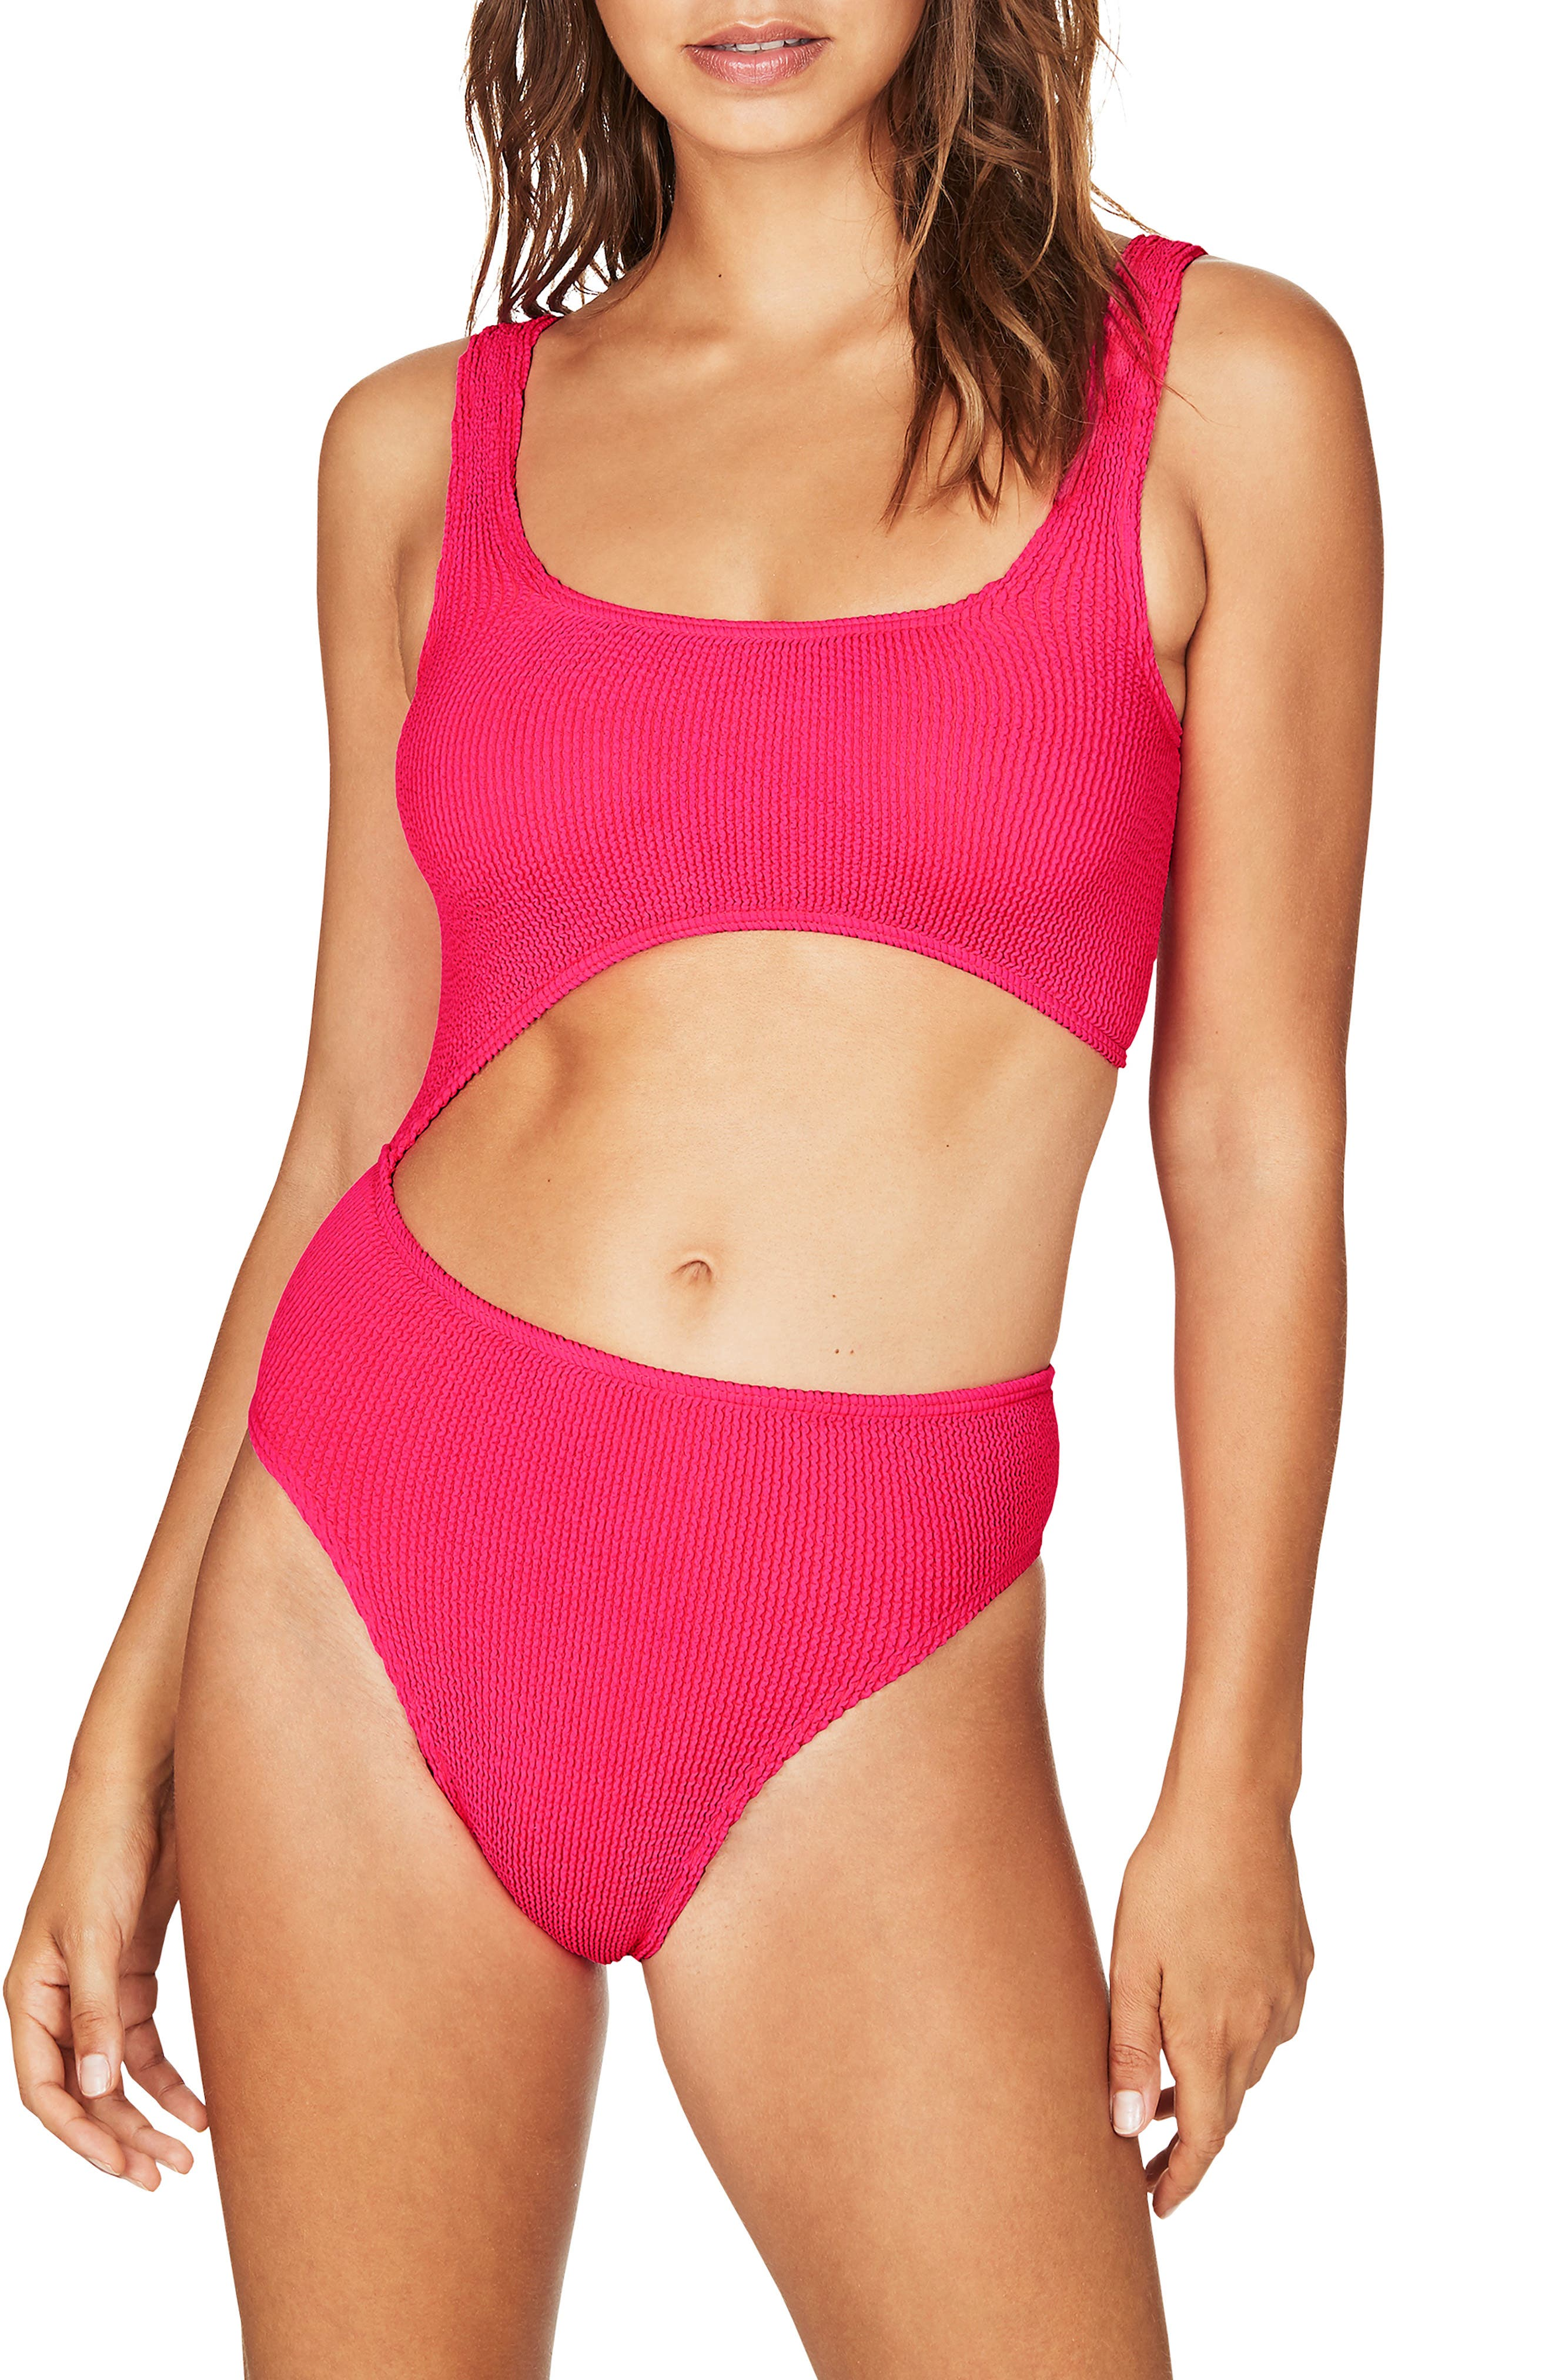 Bound By Bond-Eye The Maya One-Piece Swimsuit, Size One Size - Pink